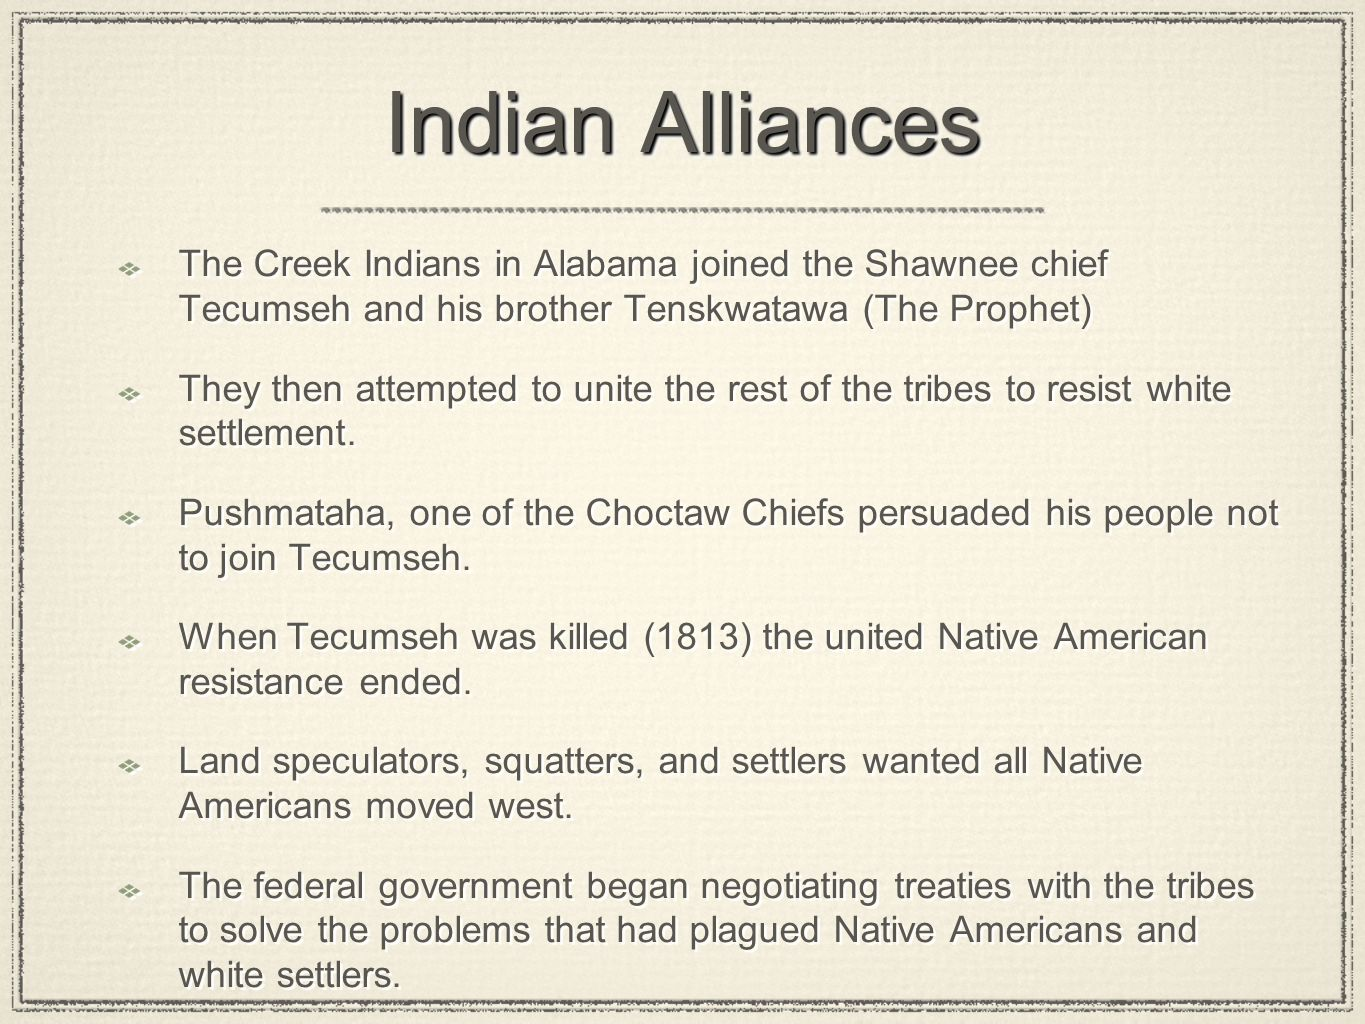 Indian Alliances The Creek Indians in Alabama joined the Shawnee chief Tecumseh and his brother Tenskwatawa (The Prophet)